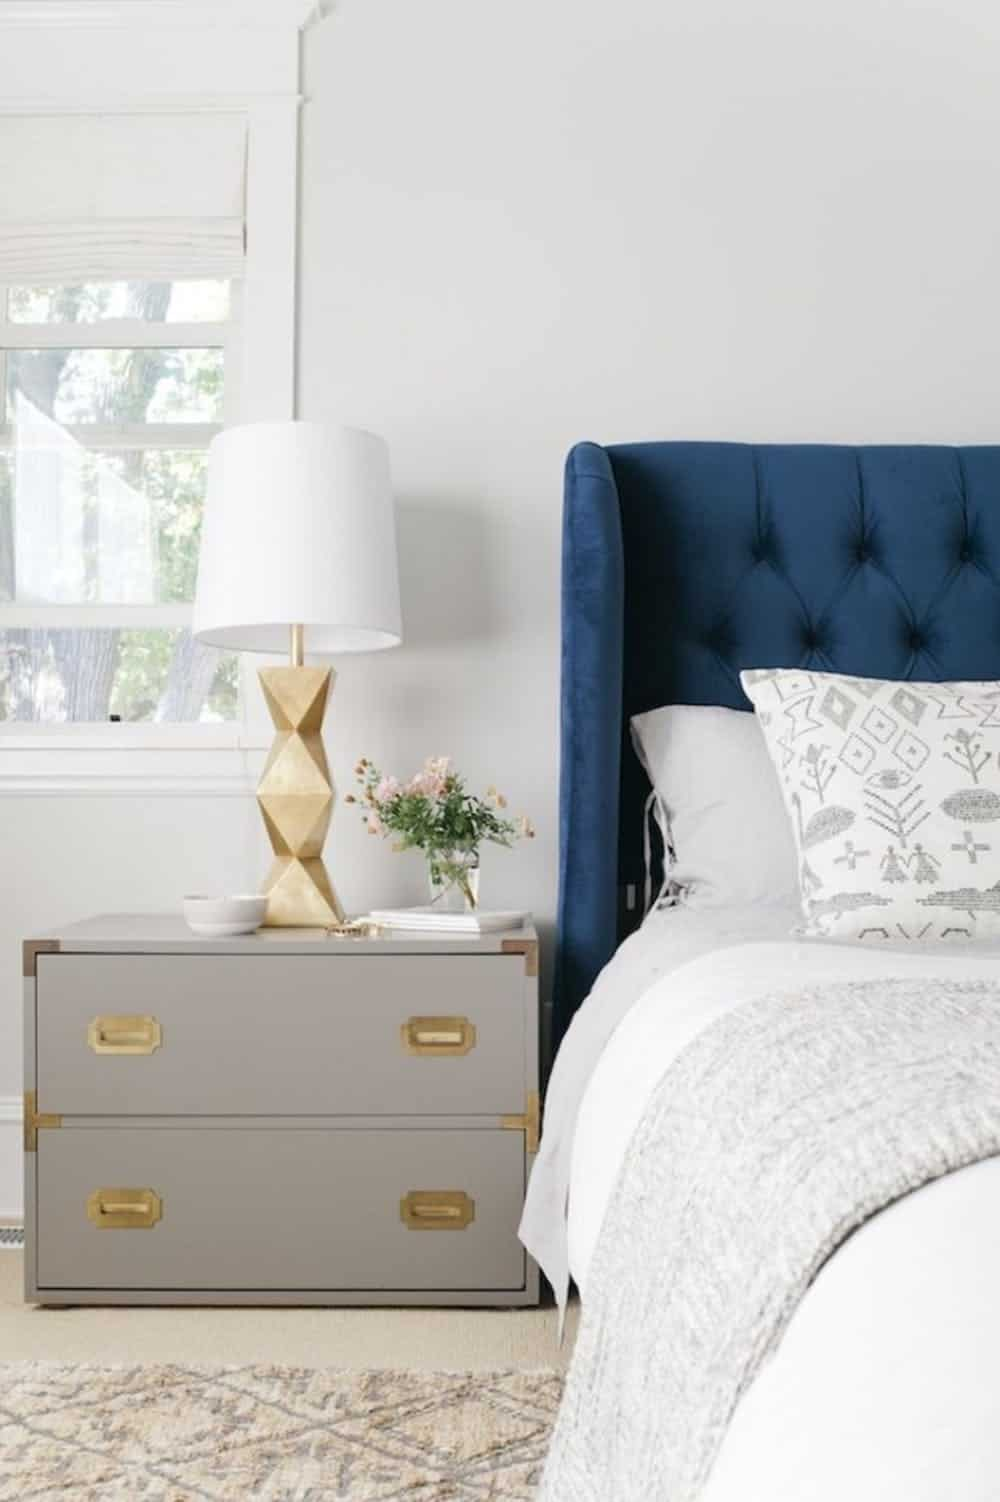 simple modern nightstand decor